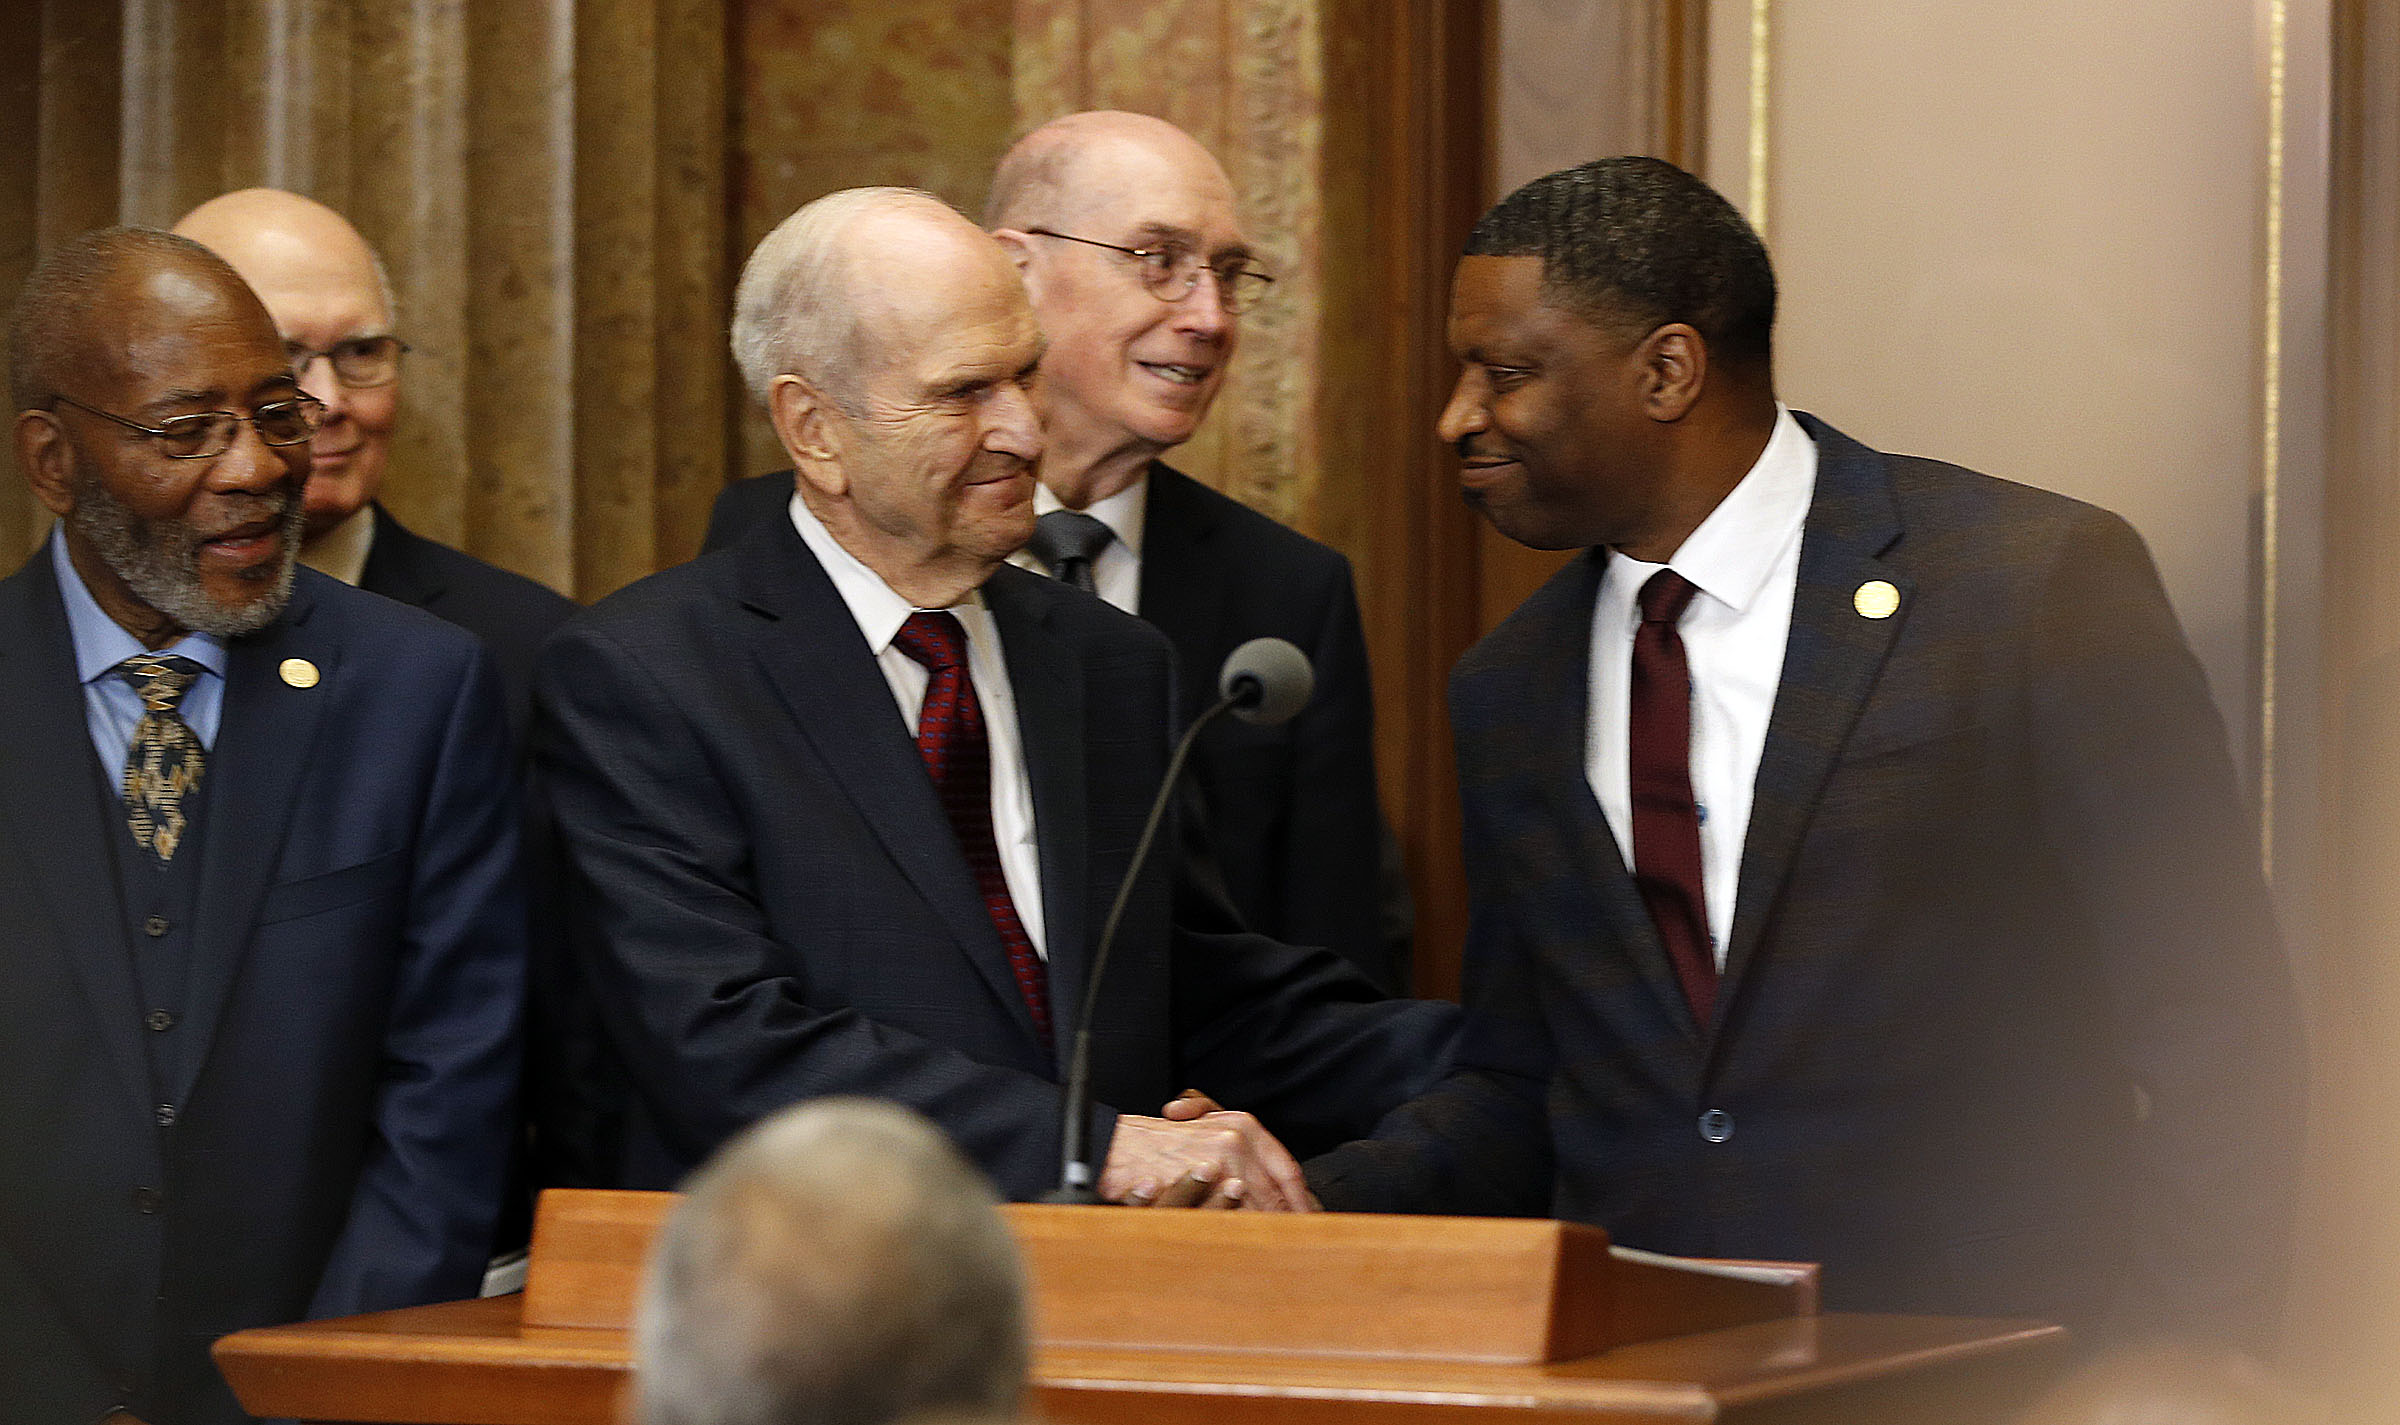 President Russell M. Nelson of The Church of Jesus Christ of Latter-day Saints shakes hands with Derrick Johnson, president and CEO of the NAACP, right, during a press conference in Salt Lake City on Thursday, May 17, 2018.